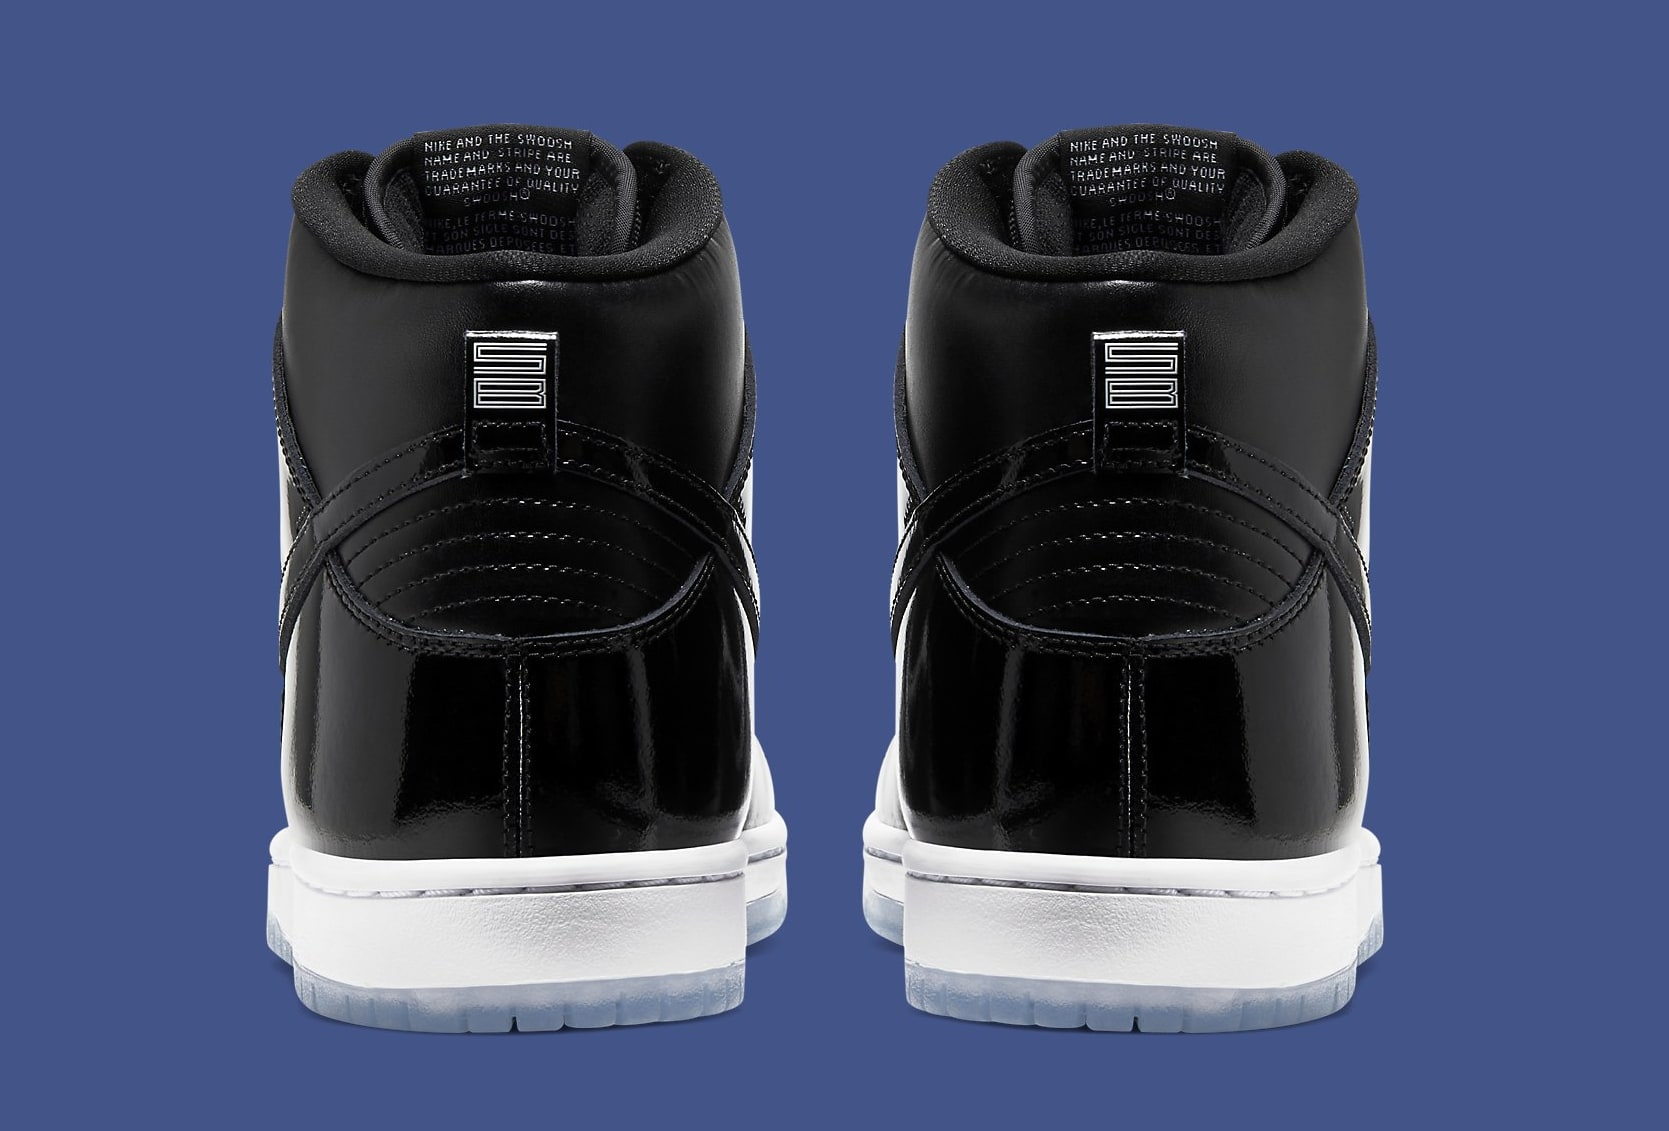 nike-sb-dunk-high-space-jam-bq6826-002-heel